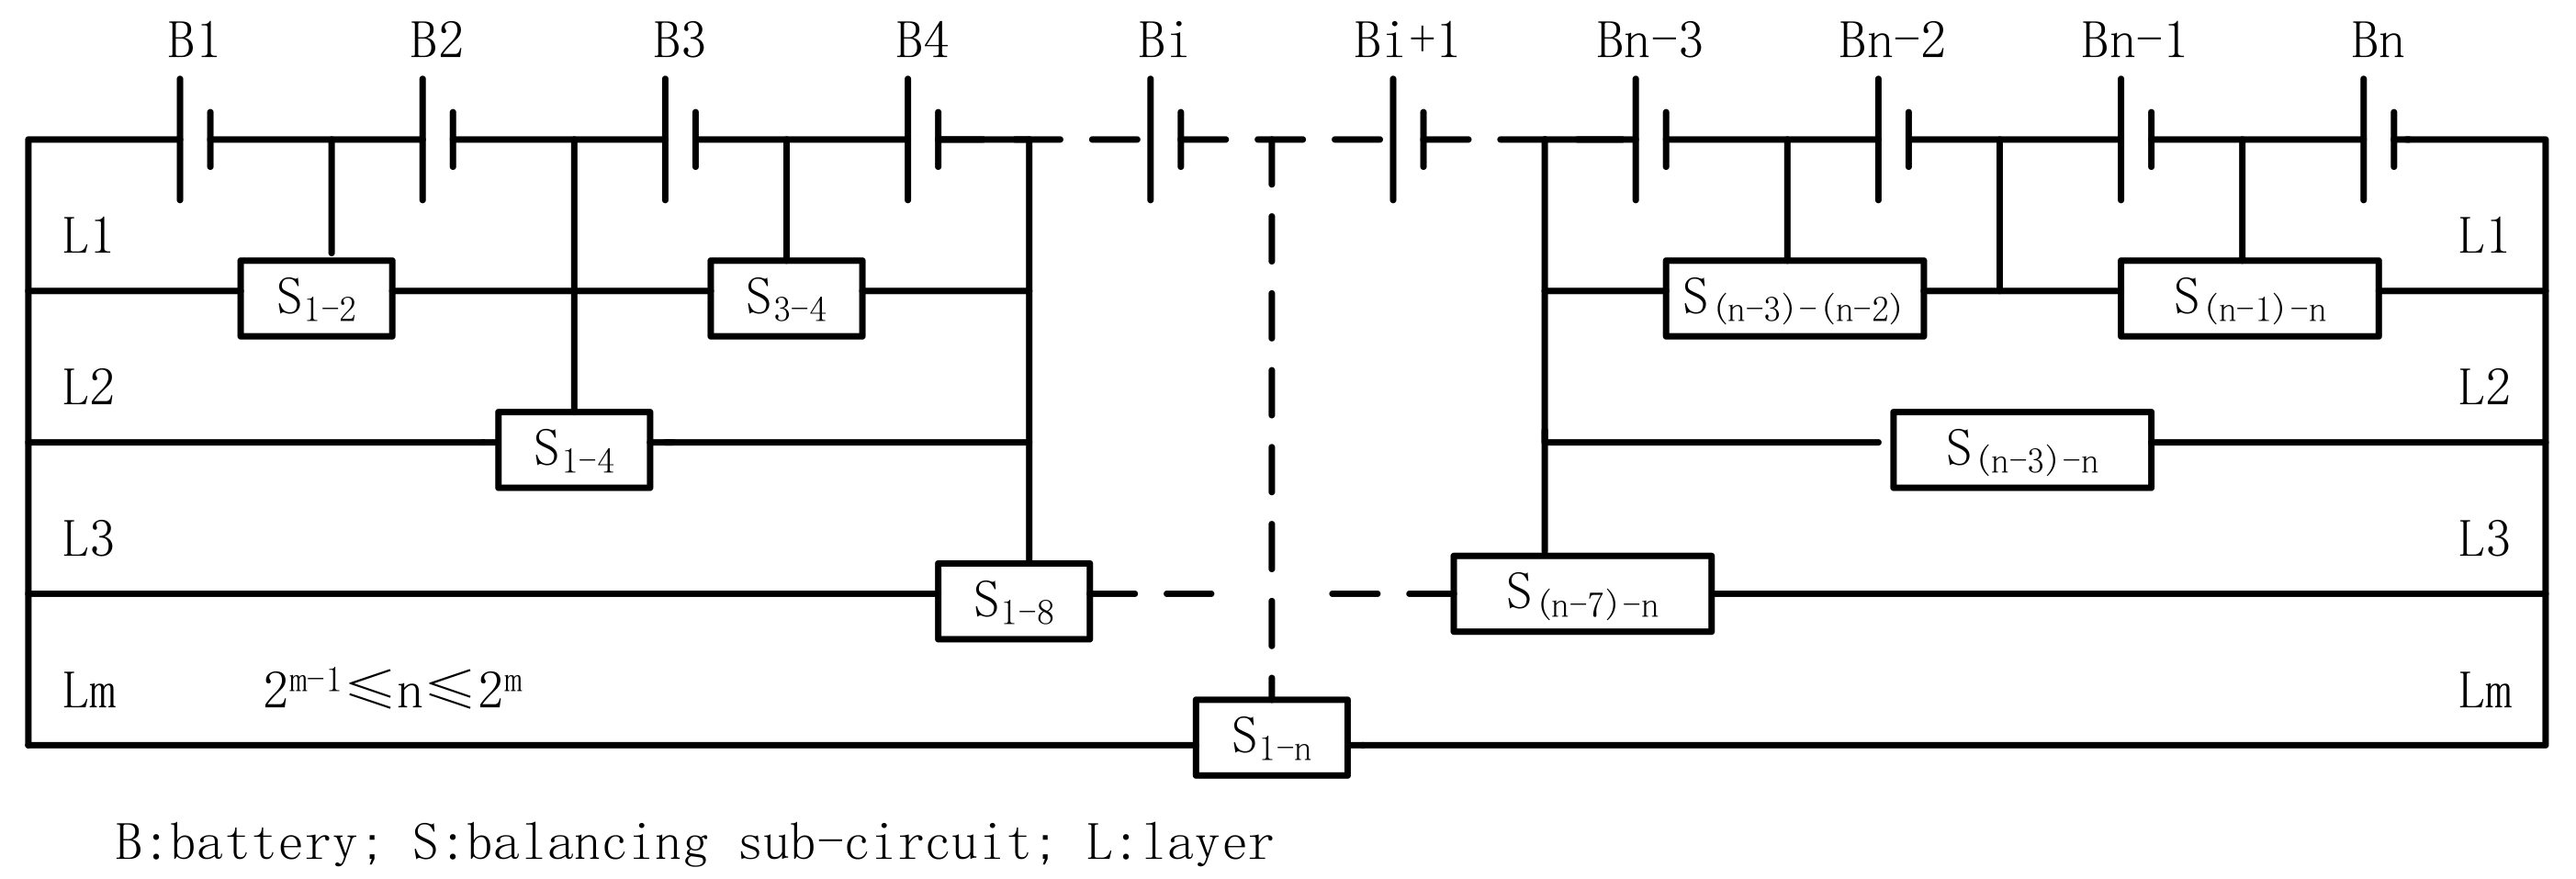 Energies Free Full Text A Novel Layered Bidirectional Equalizer Series Parallel Batteries Tutorial Circuits No